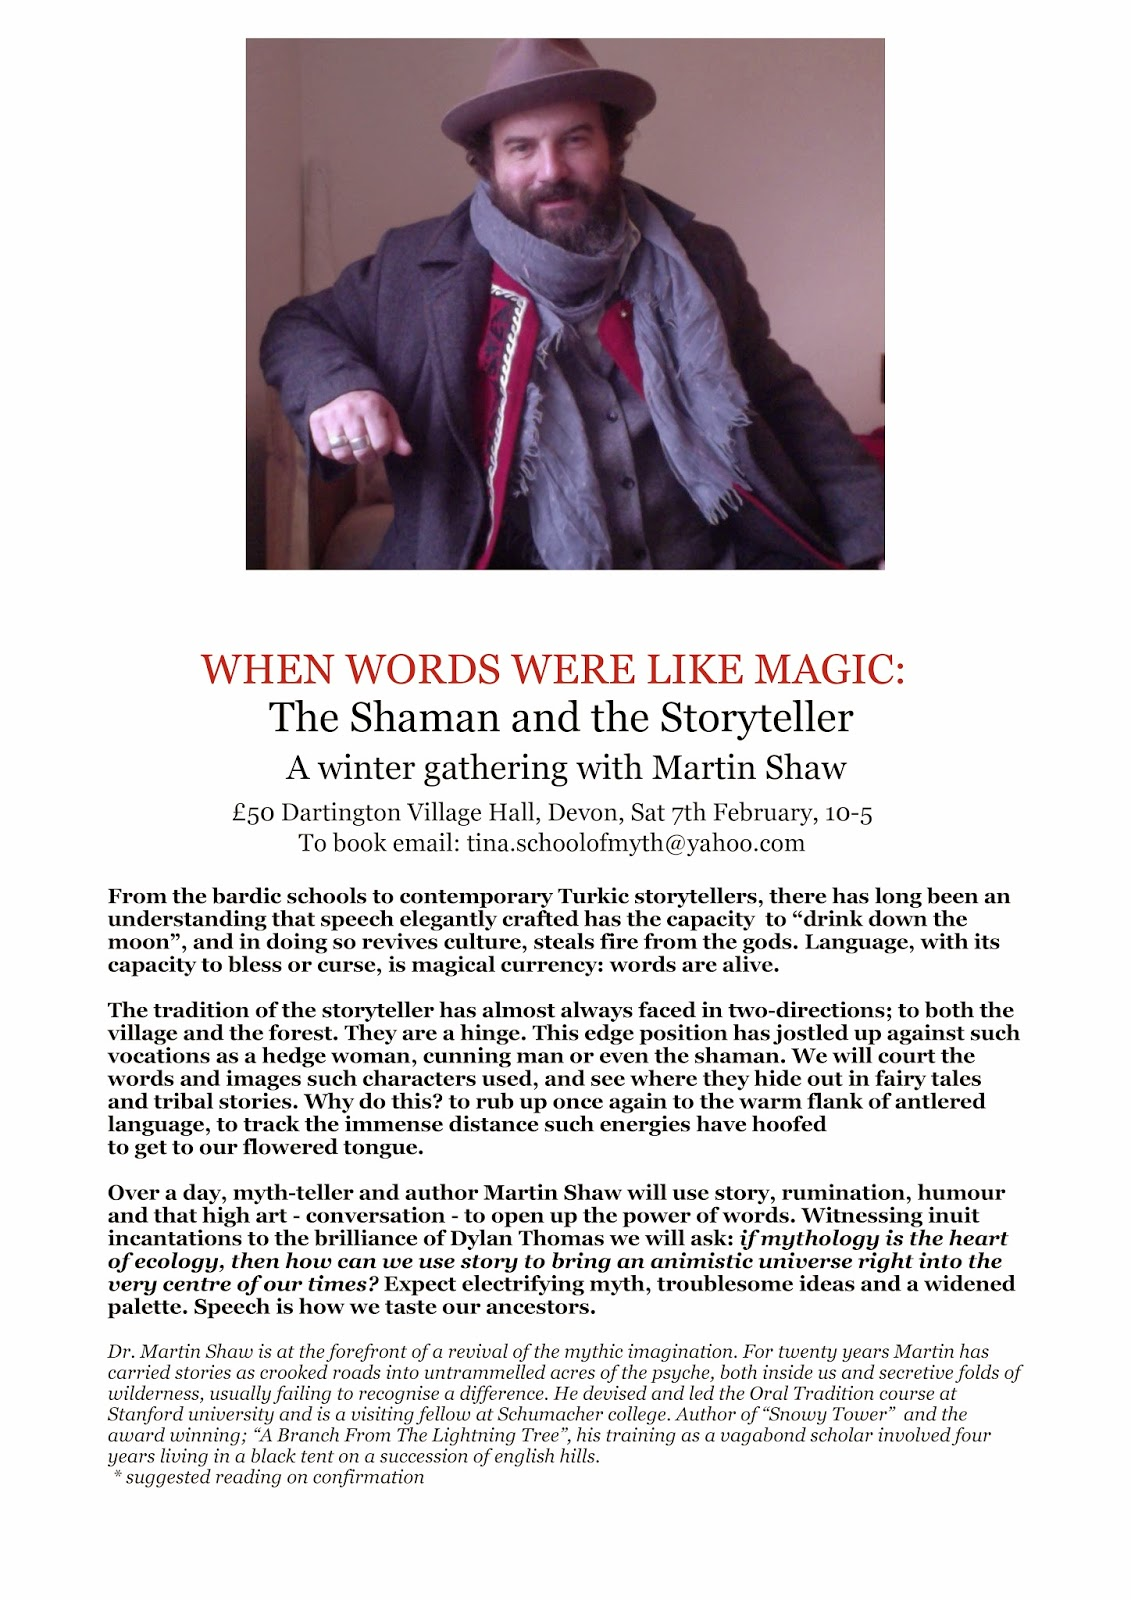 When Words Were Like Magic Flyer Martin Shaw